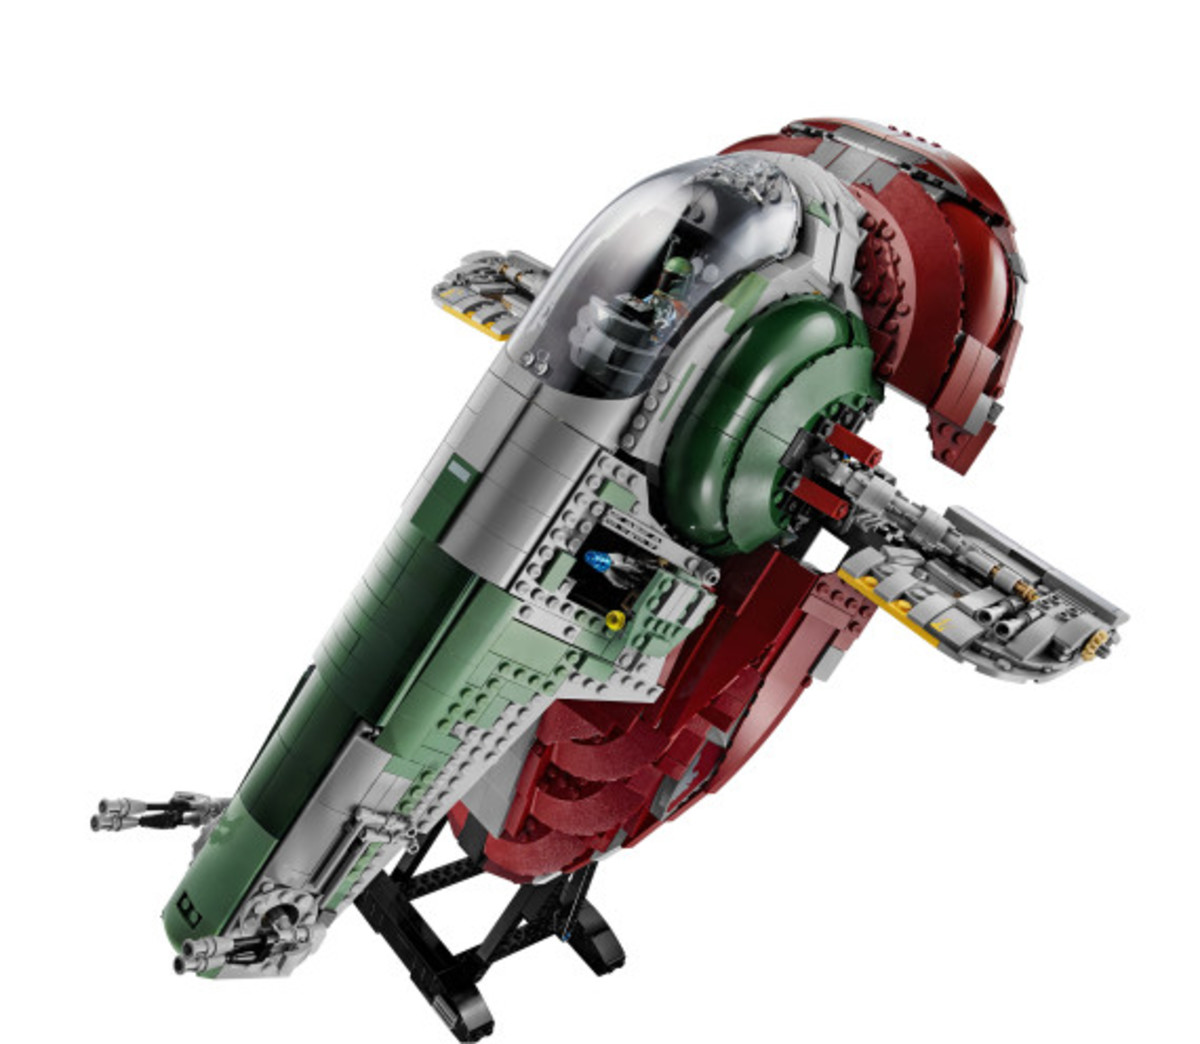 Star Wars x LEGO Ultimate Collector's Series: Boba Fett's Slave I Kit | Release Info - 23